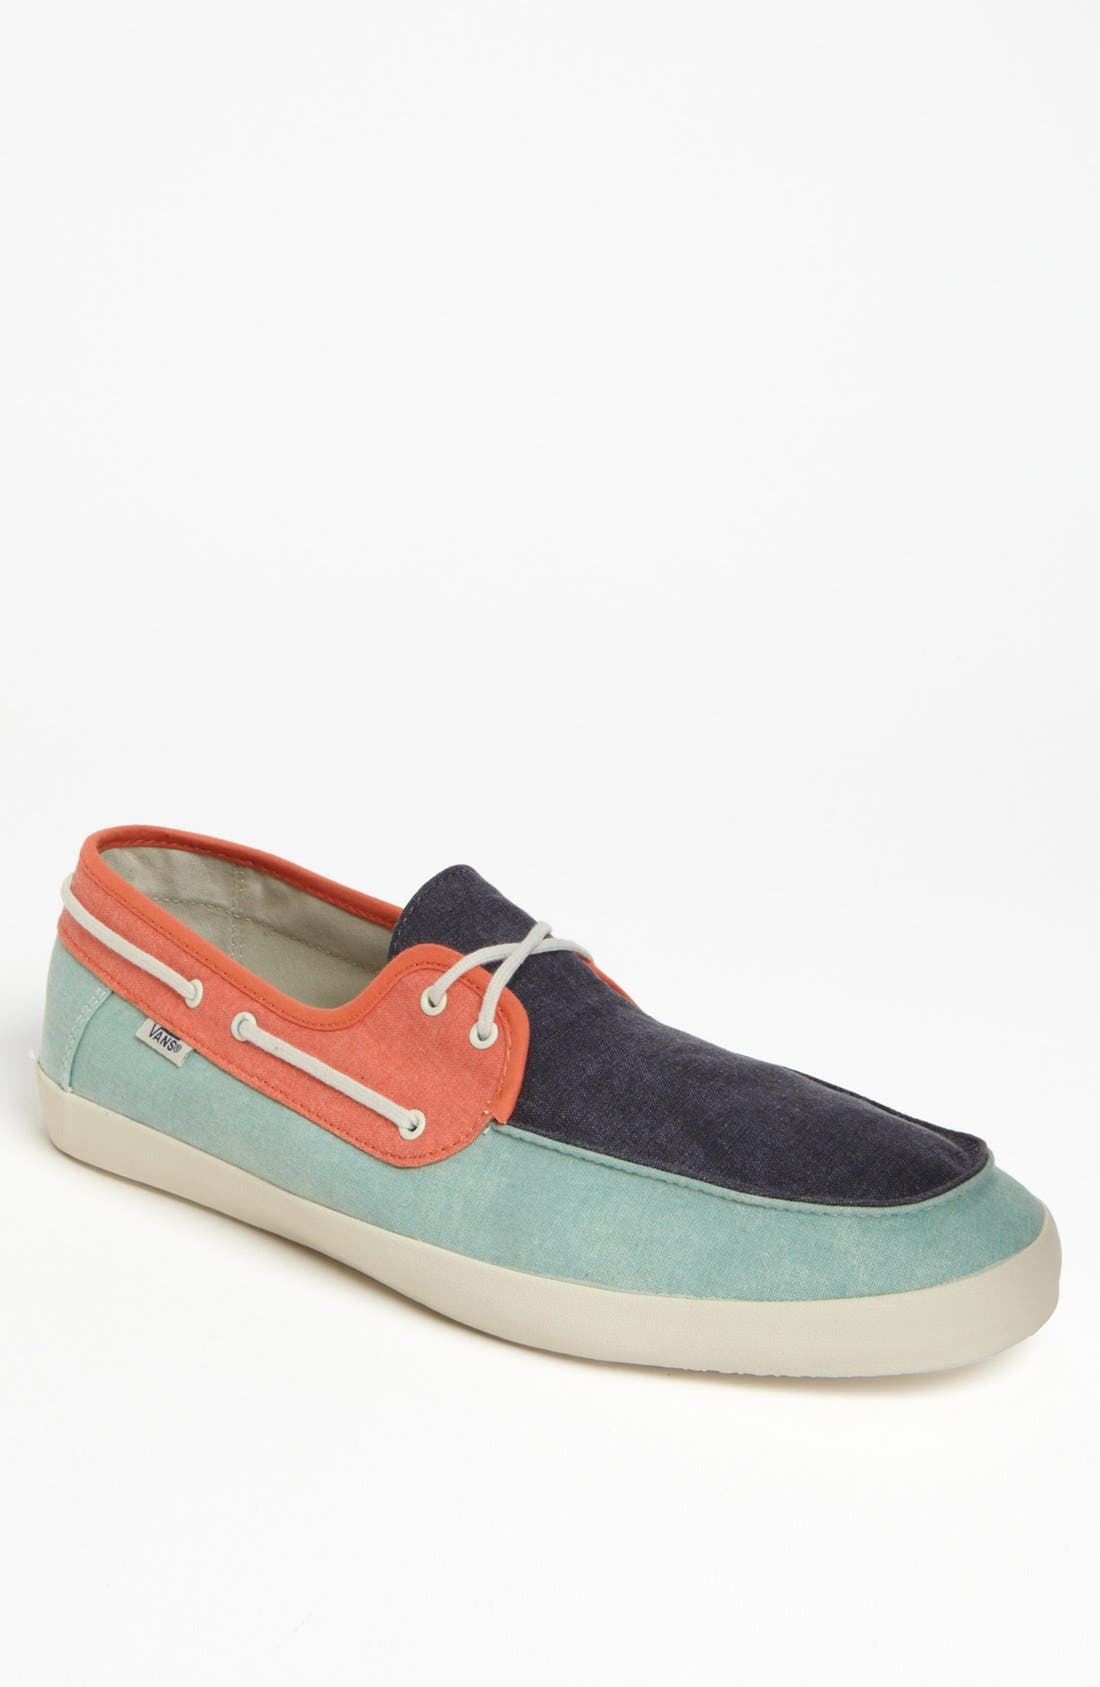 Main Image - Vans 'Chauffeur' Boat Shoe (Men)